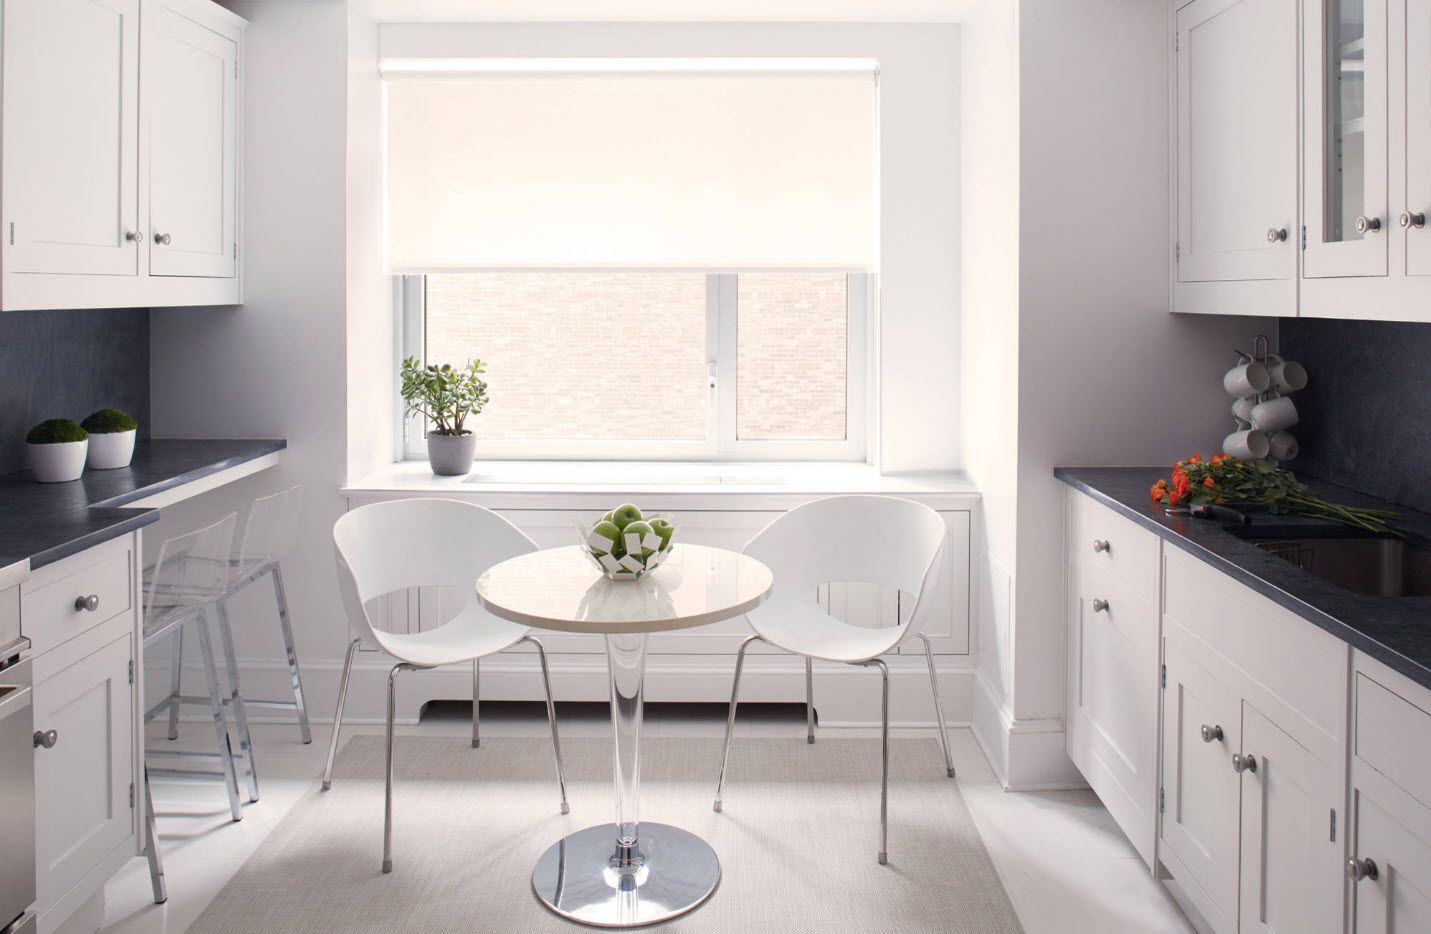 White interior of the kitchen with dining group for two and round table